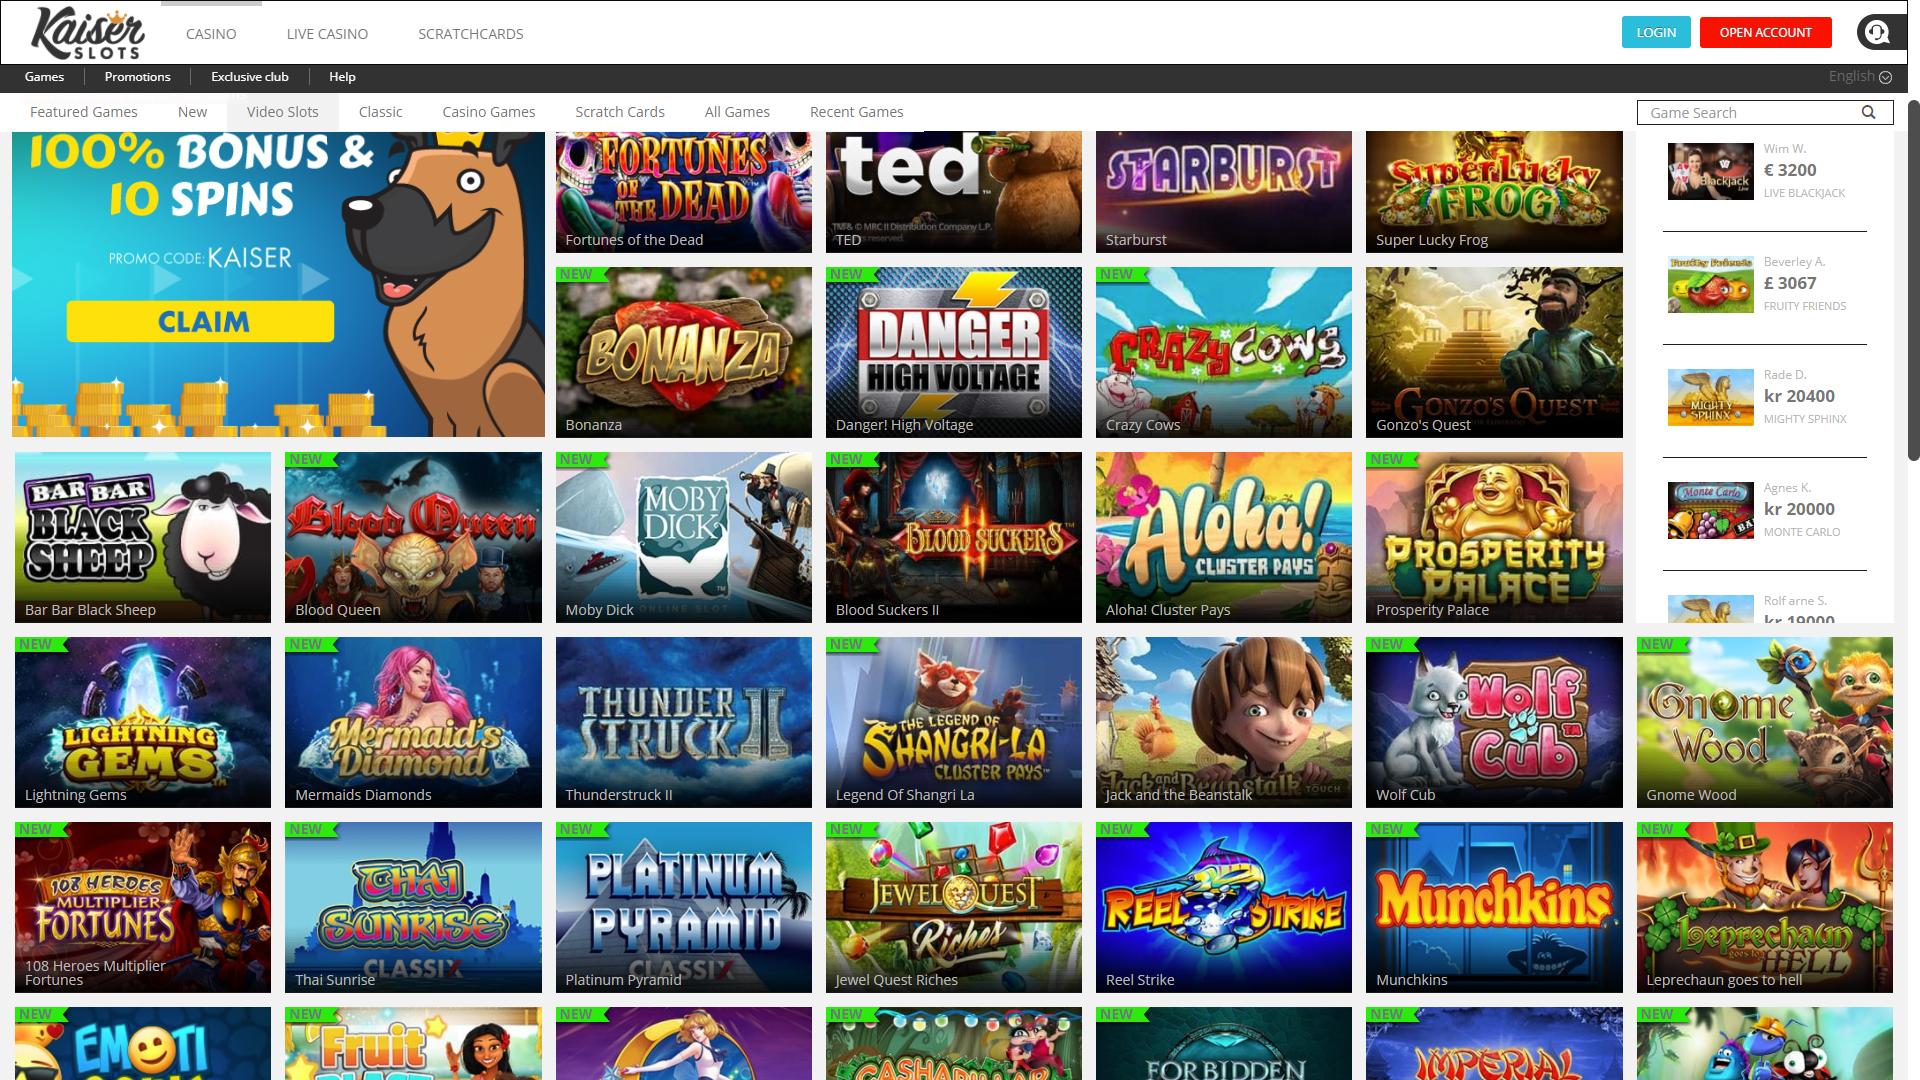 kaiserslots casino review lots of games short on promotions